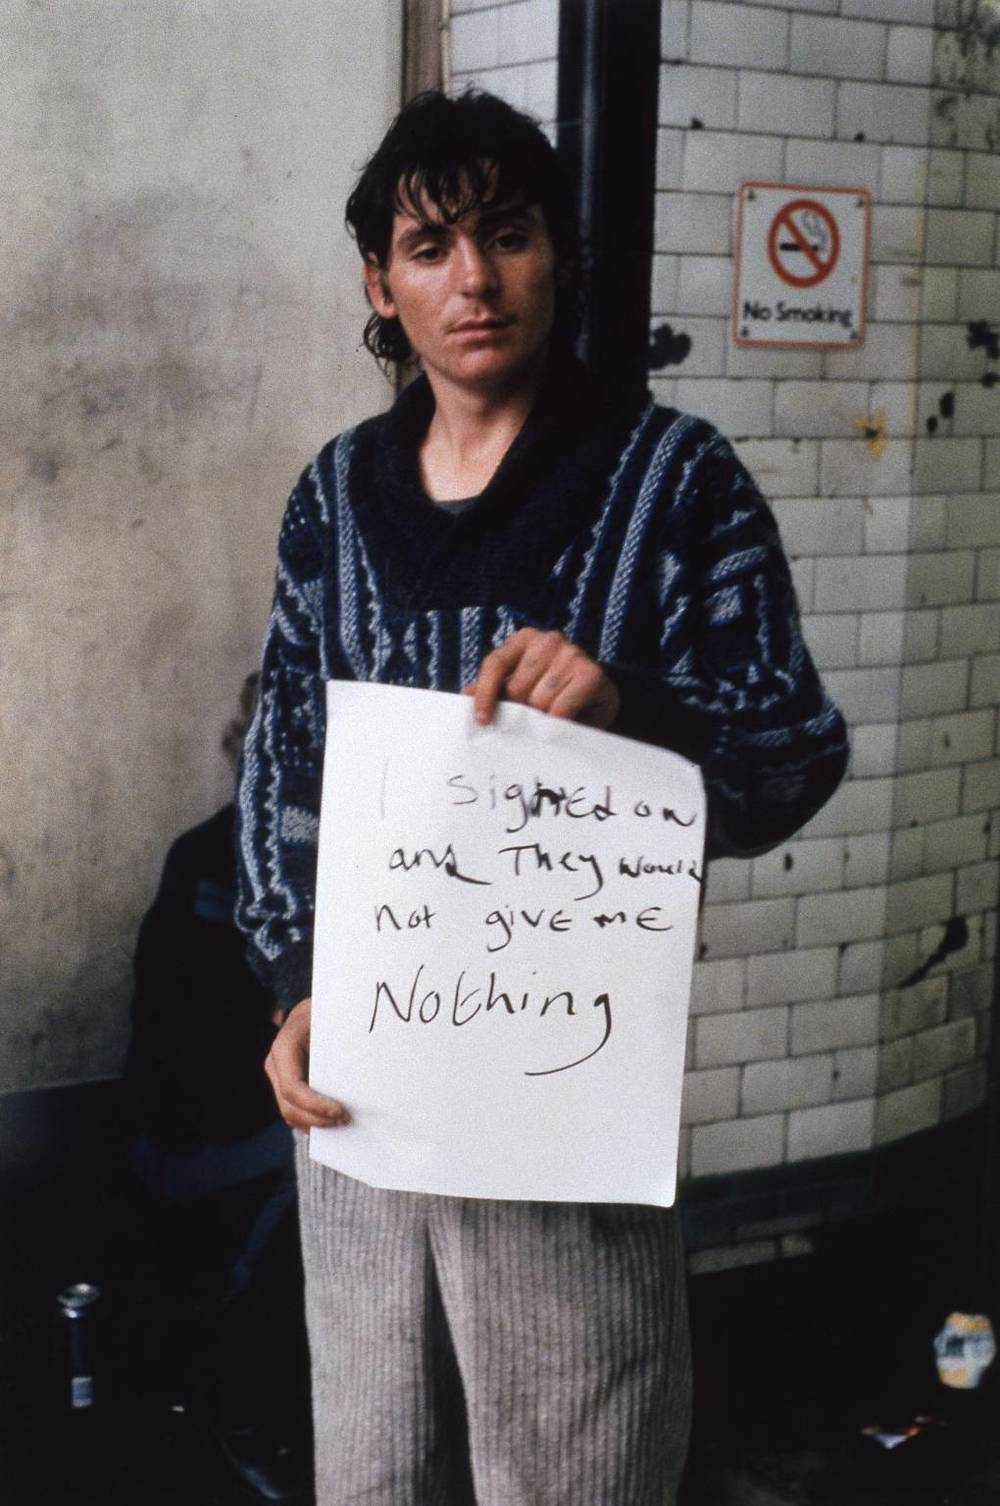 I Signed On And They Would Not Give Me Nothing , 1992 by Gillian Wearing.